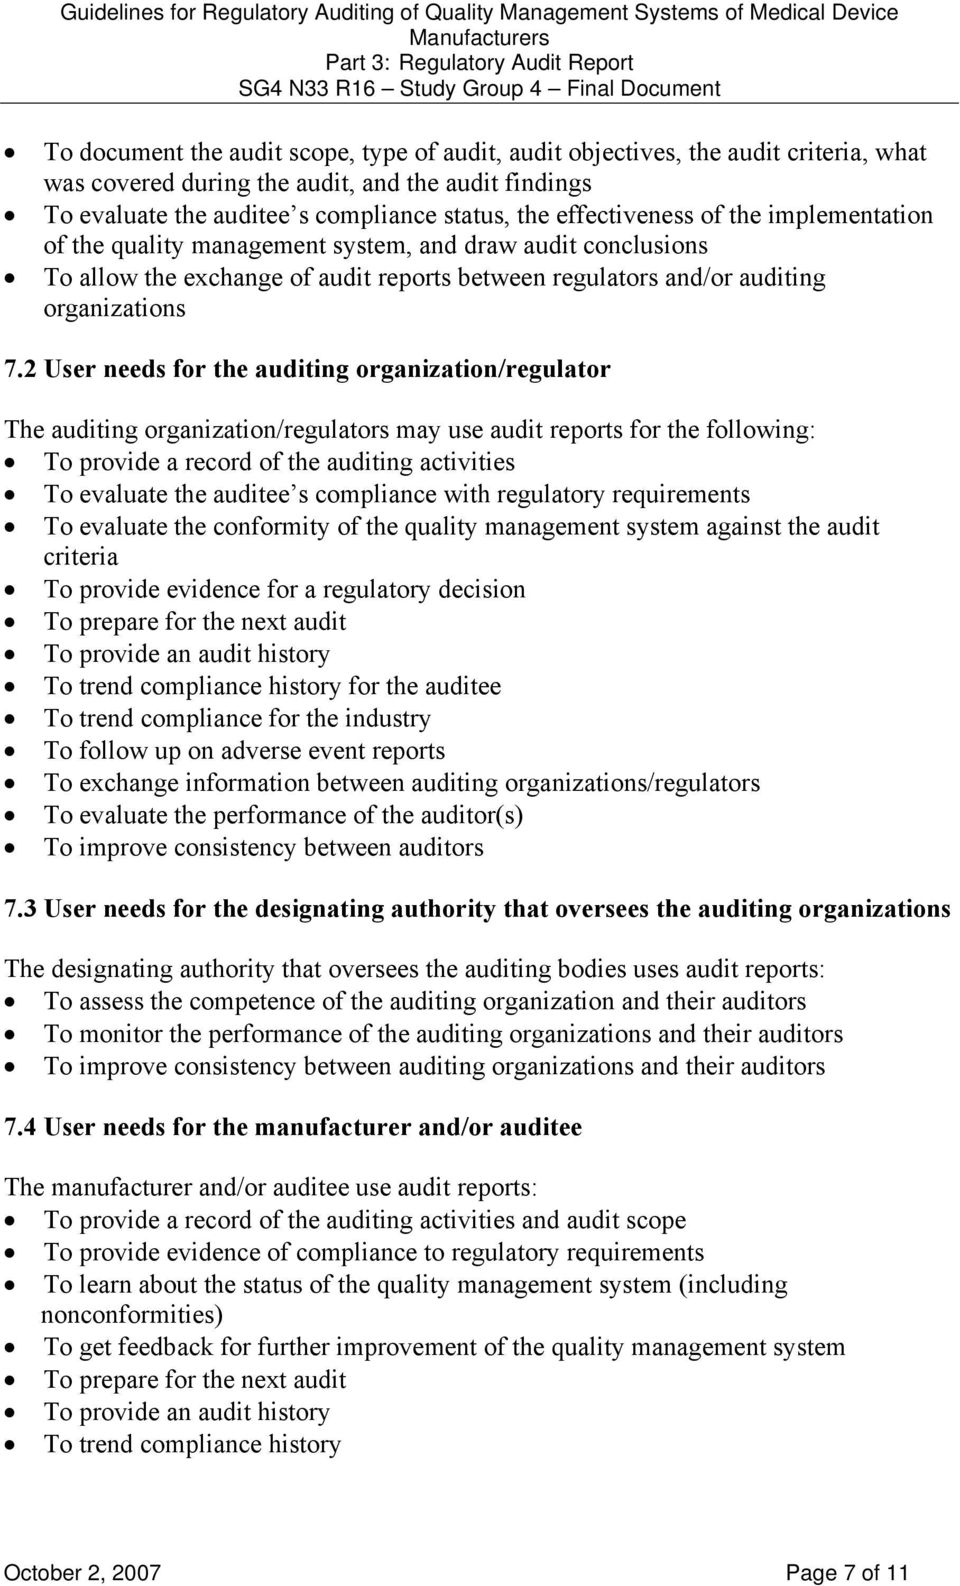 2 User needs for the auditing organization/regulator The auditing organization/regulators may use audit reports for the following: To provide a record of the auditing activities To evaluate the